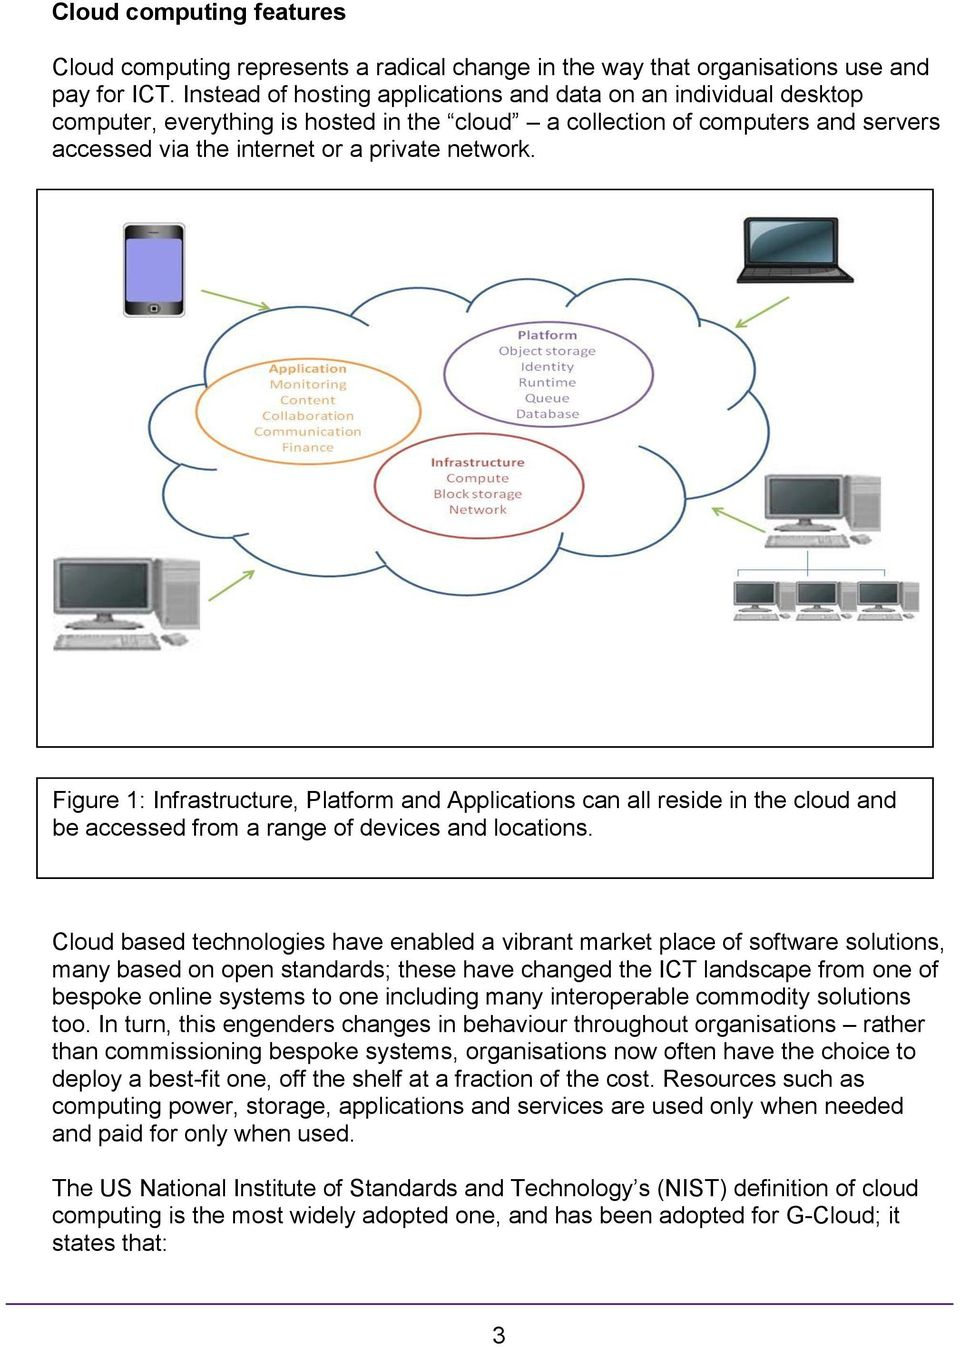 Figure 1: Infrastructure, Platform and Applications can all reside in the cloud and be accessed from a range of devices and locations.